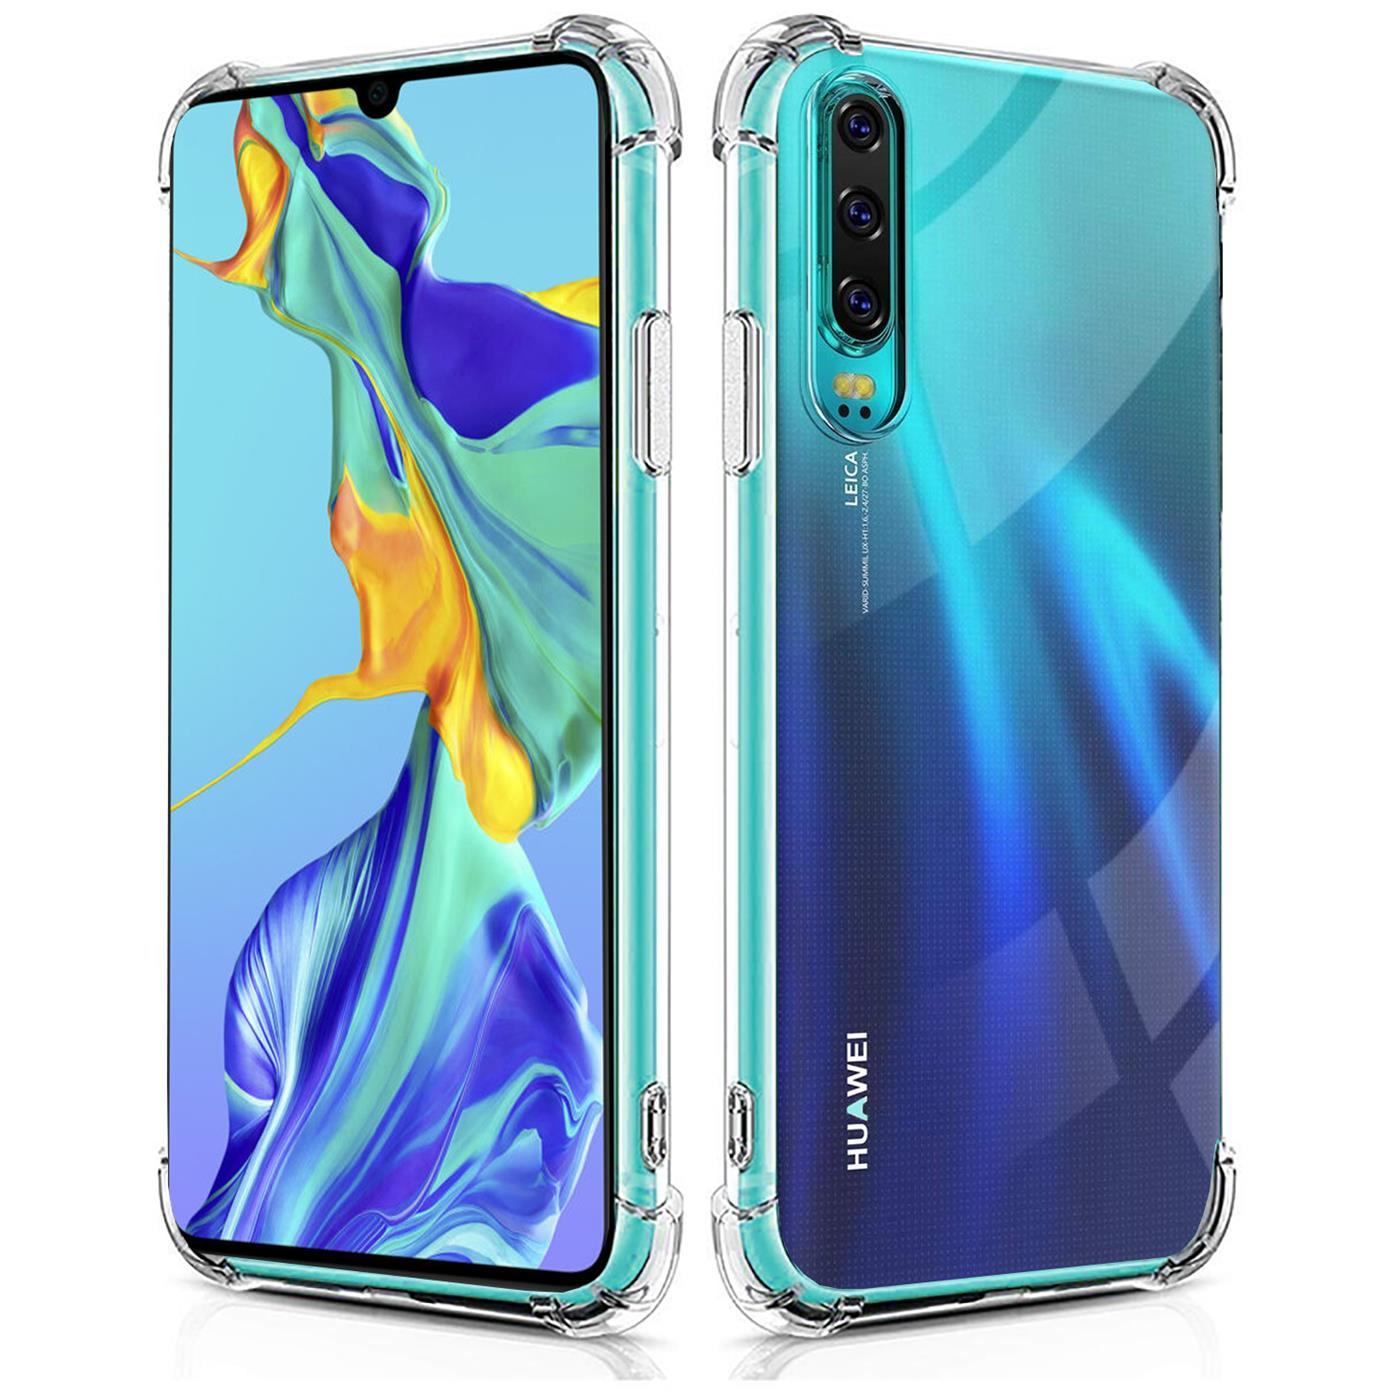 Huelle-fuer-Huawei-P30-Schutzhuelle-Anti-Shock-Handy-Case-Transparent-Cover Indexbild 9